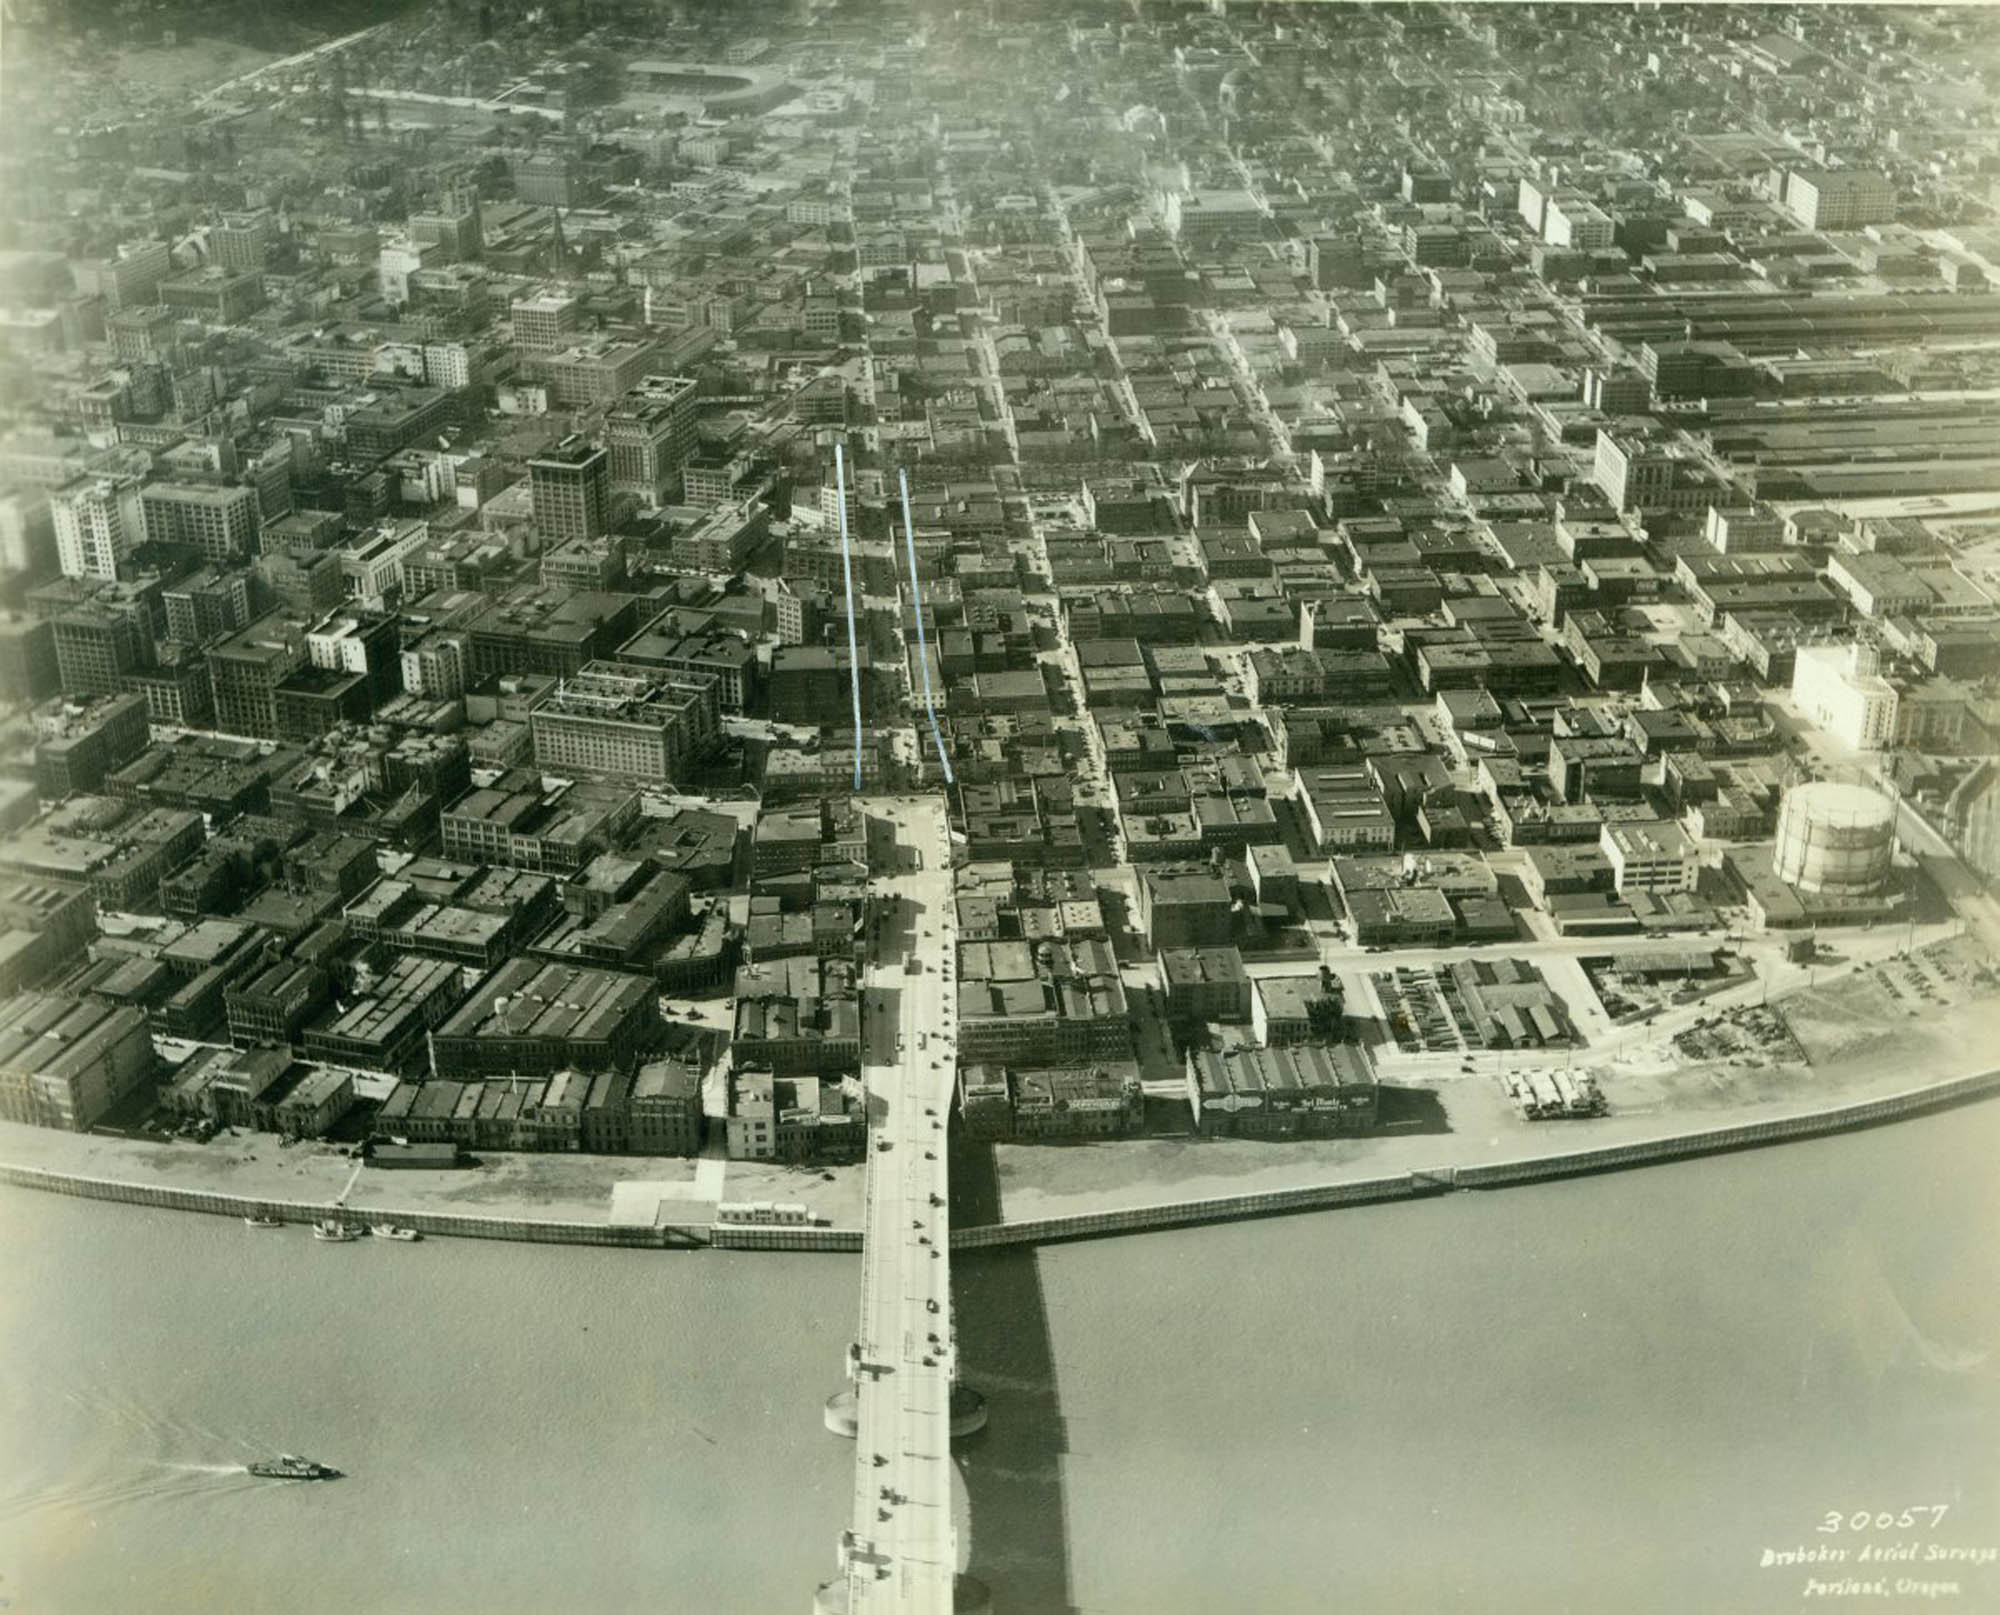 a1999-004-54-aerial-view-completed-harbor-wall-from-above-burnside-bridge-west-1928